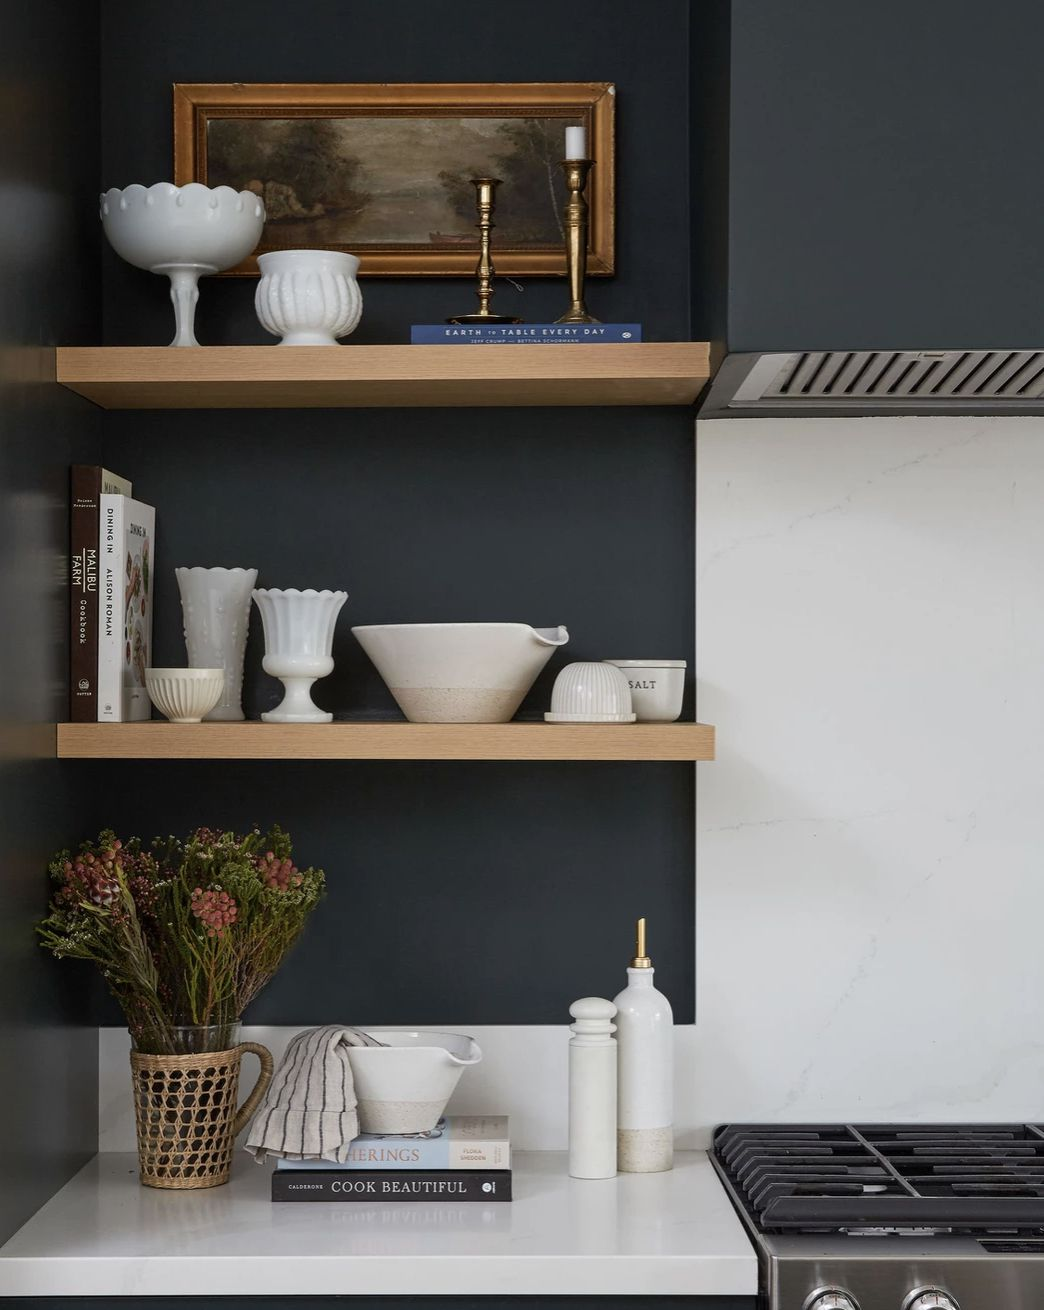 open shelving with various kitchen dishes and cookbooks